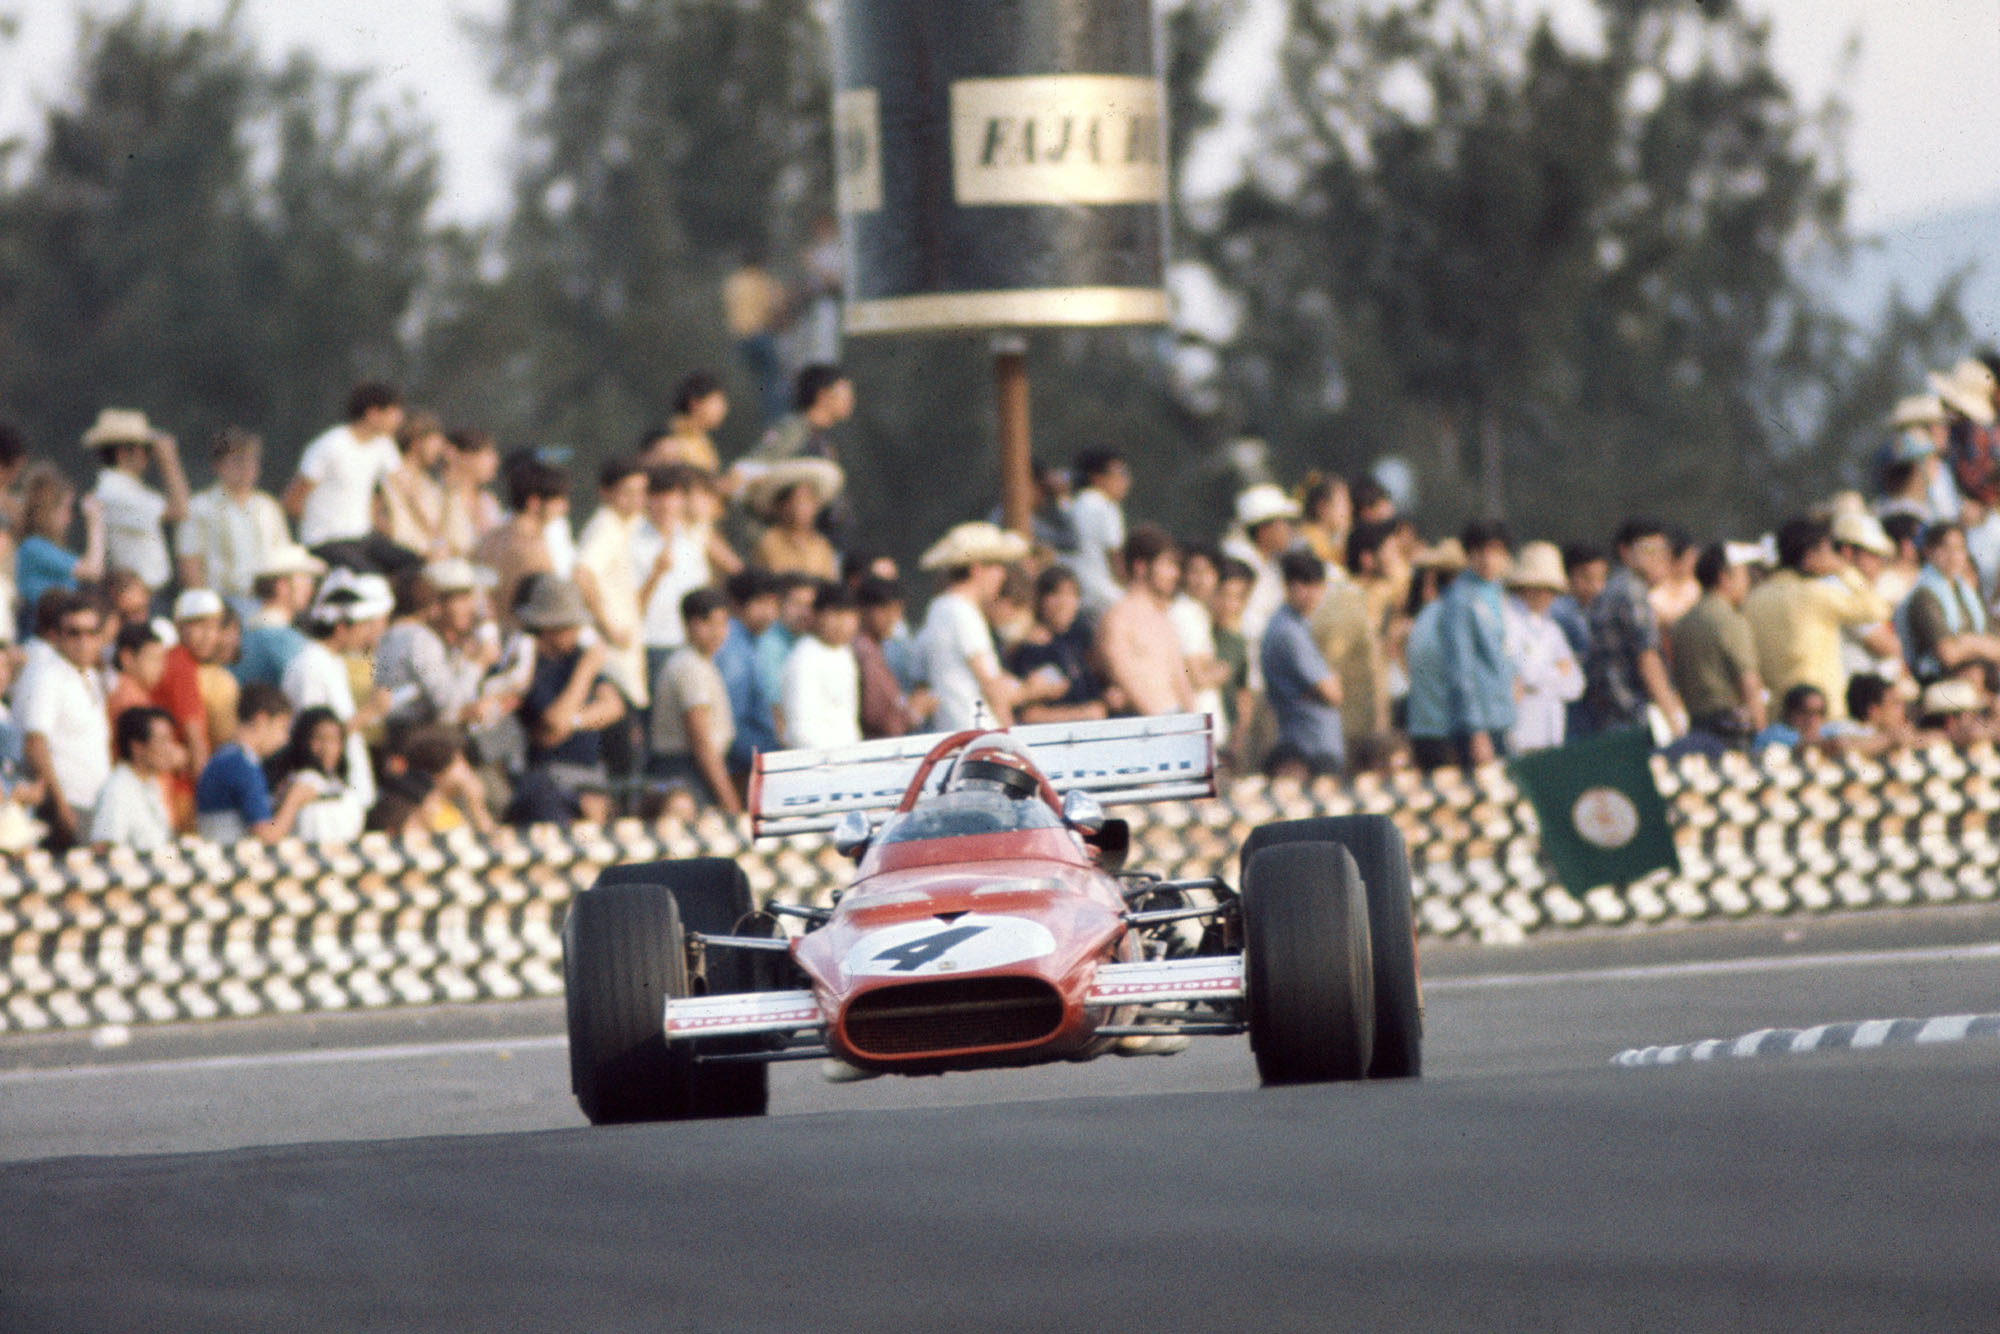 Clay Regazzoni driving for Ferrari at the 1970 Mexican Grand Prix.